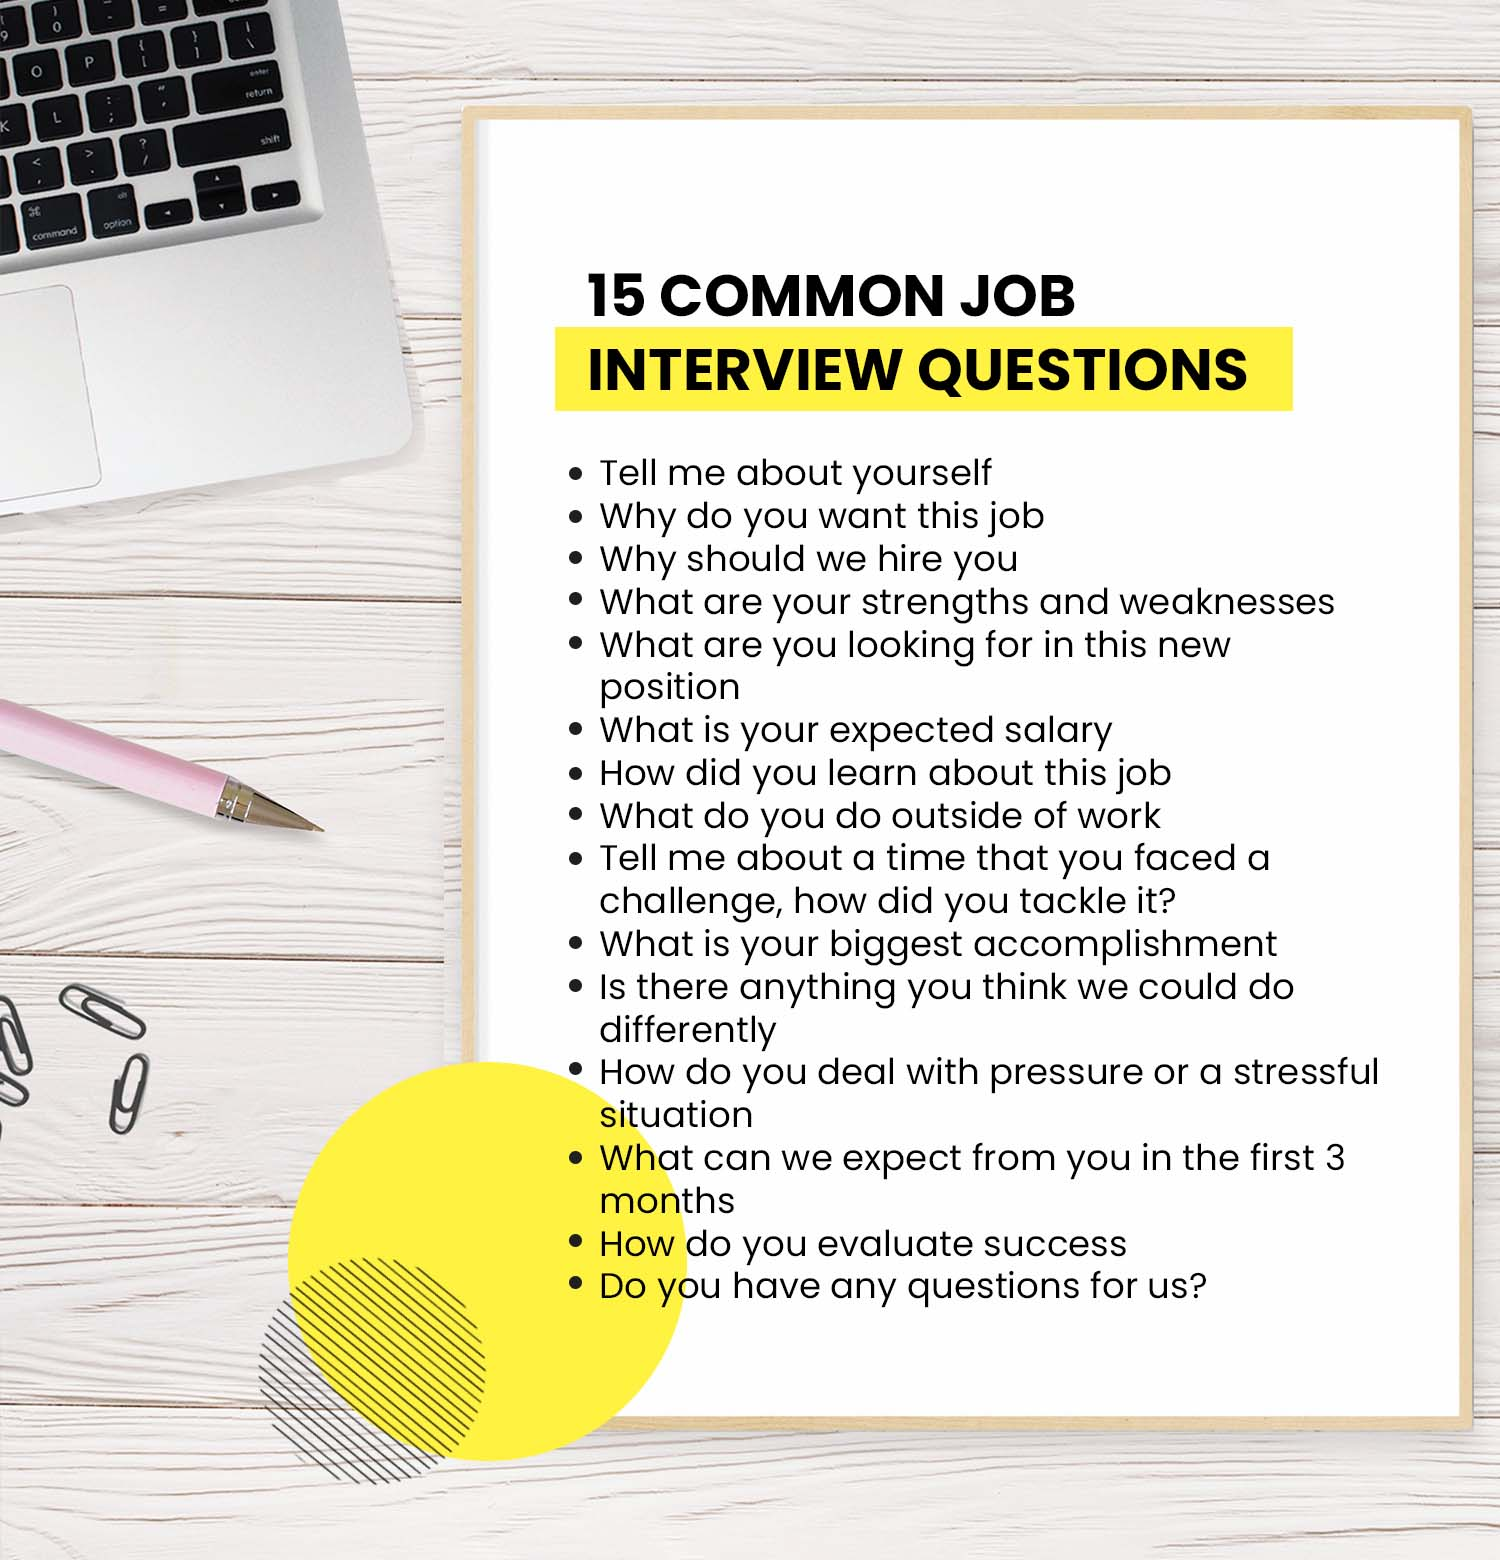 15 common job interview questions you'll be asked—and how to